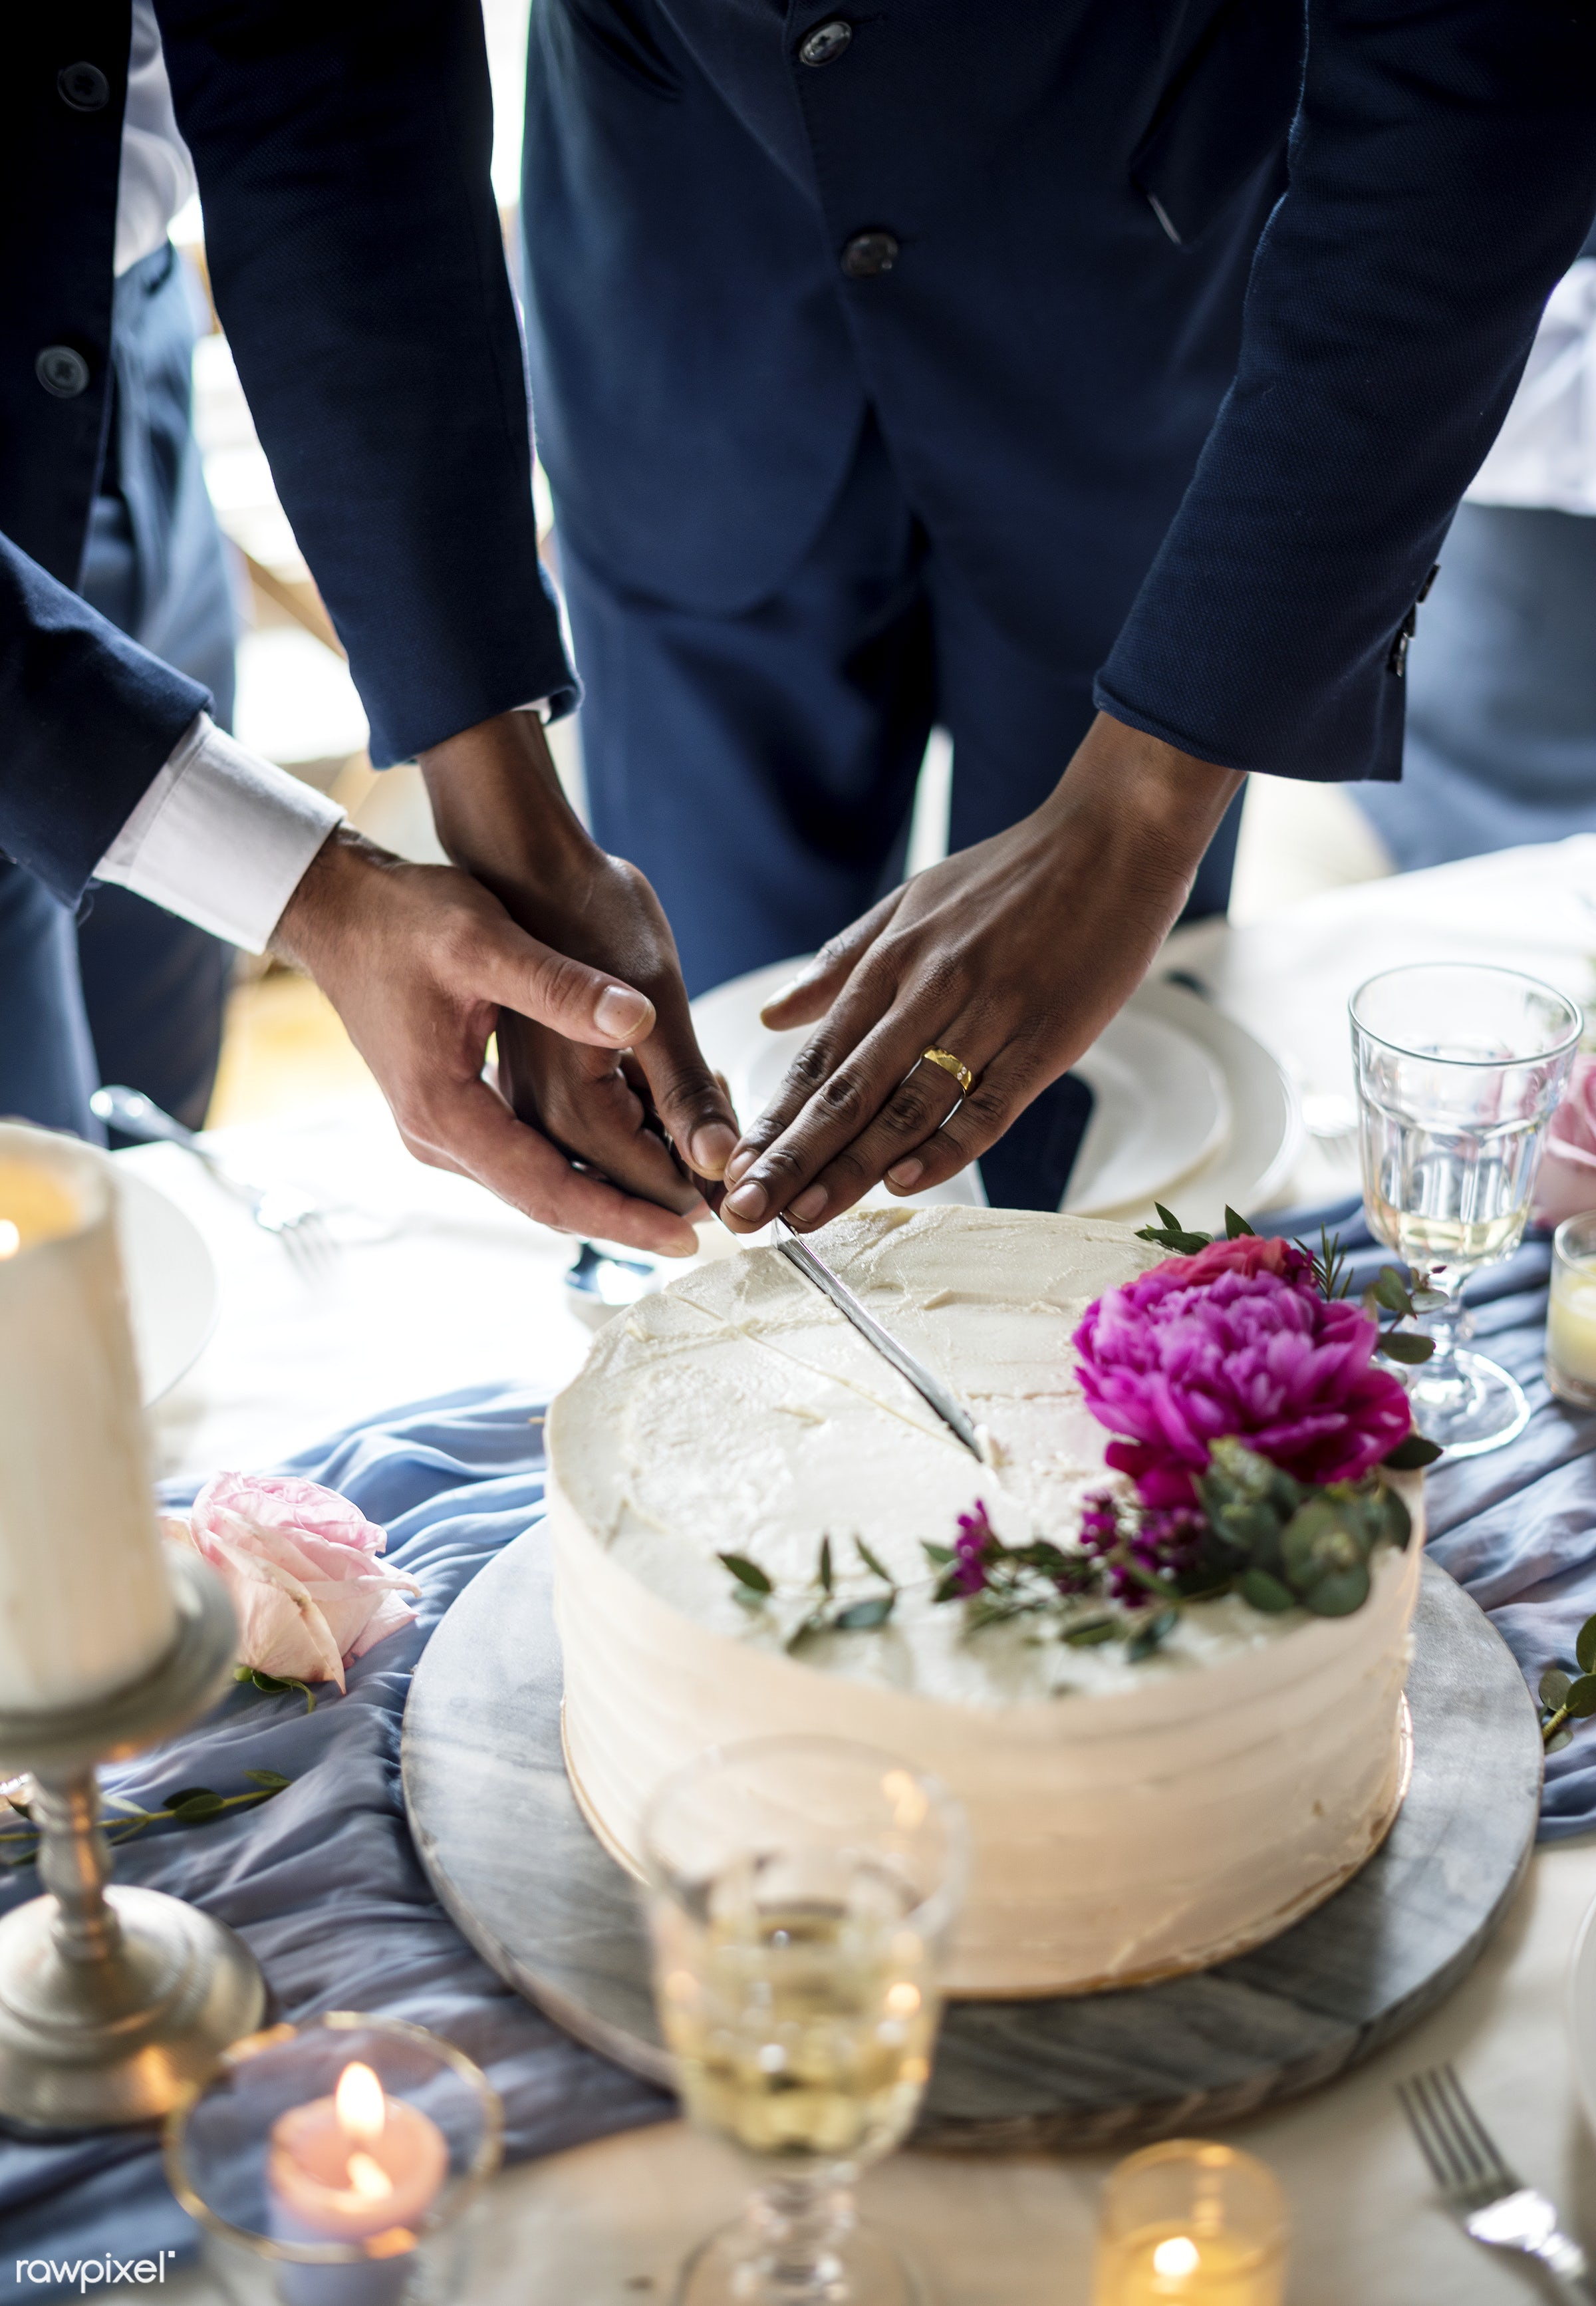 Gay couple cutting cake together - cake, celebration, closeup, cutting, dessert, equality, floral, food, gay, groom,...